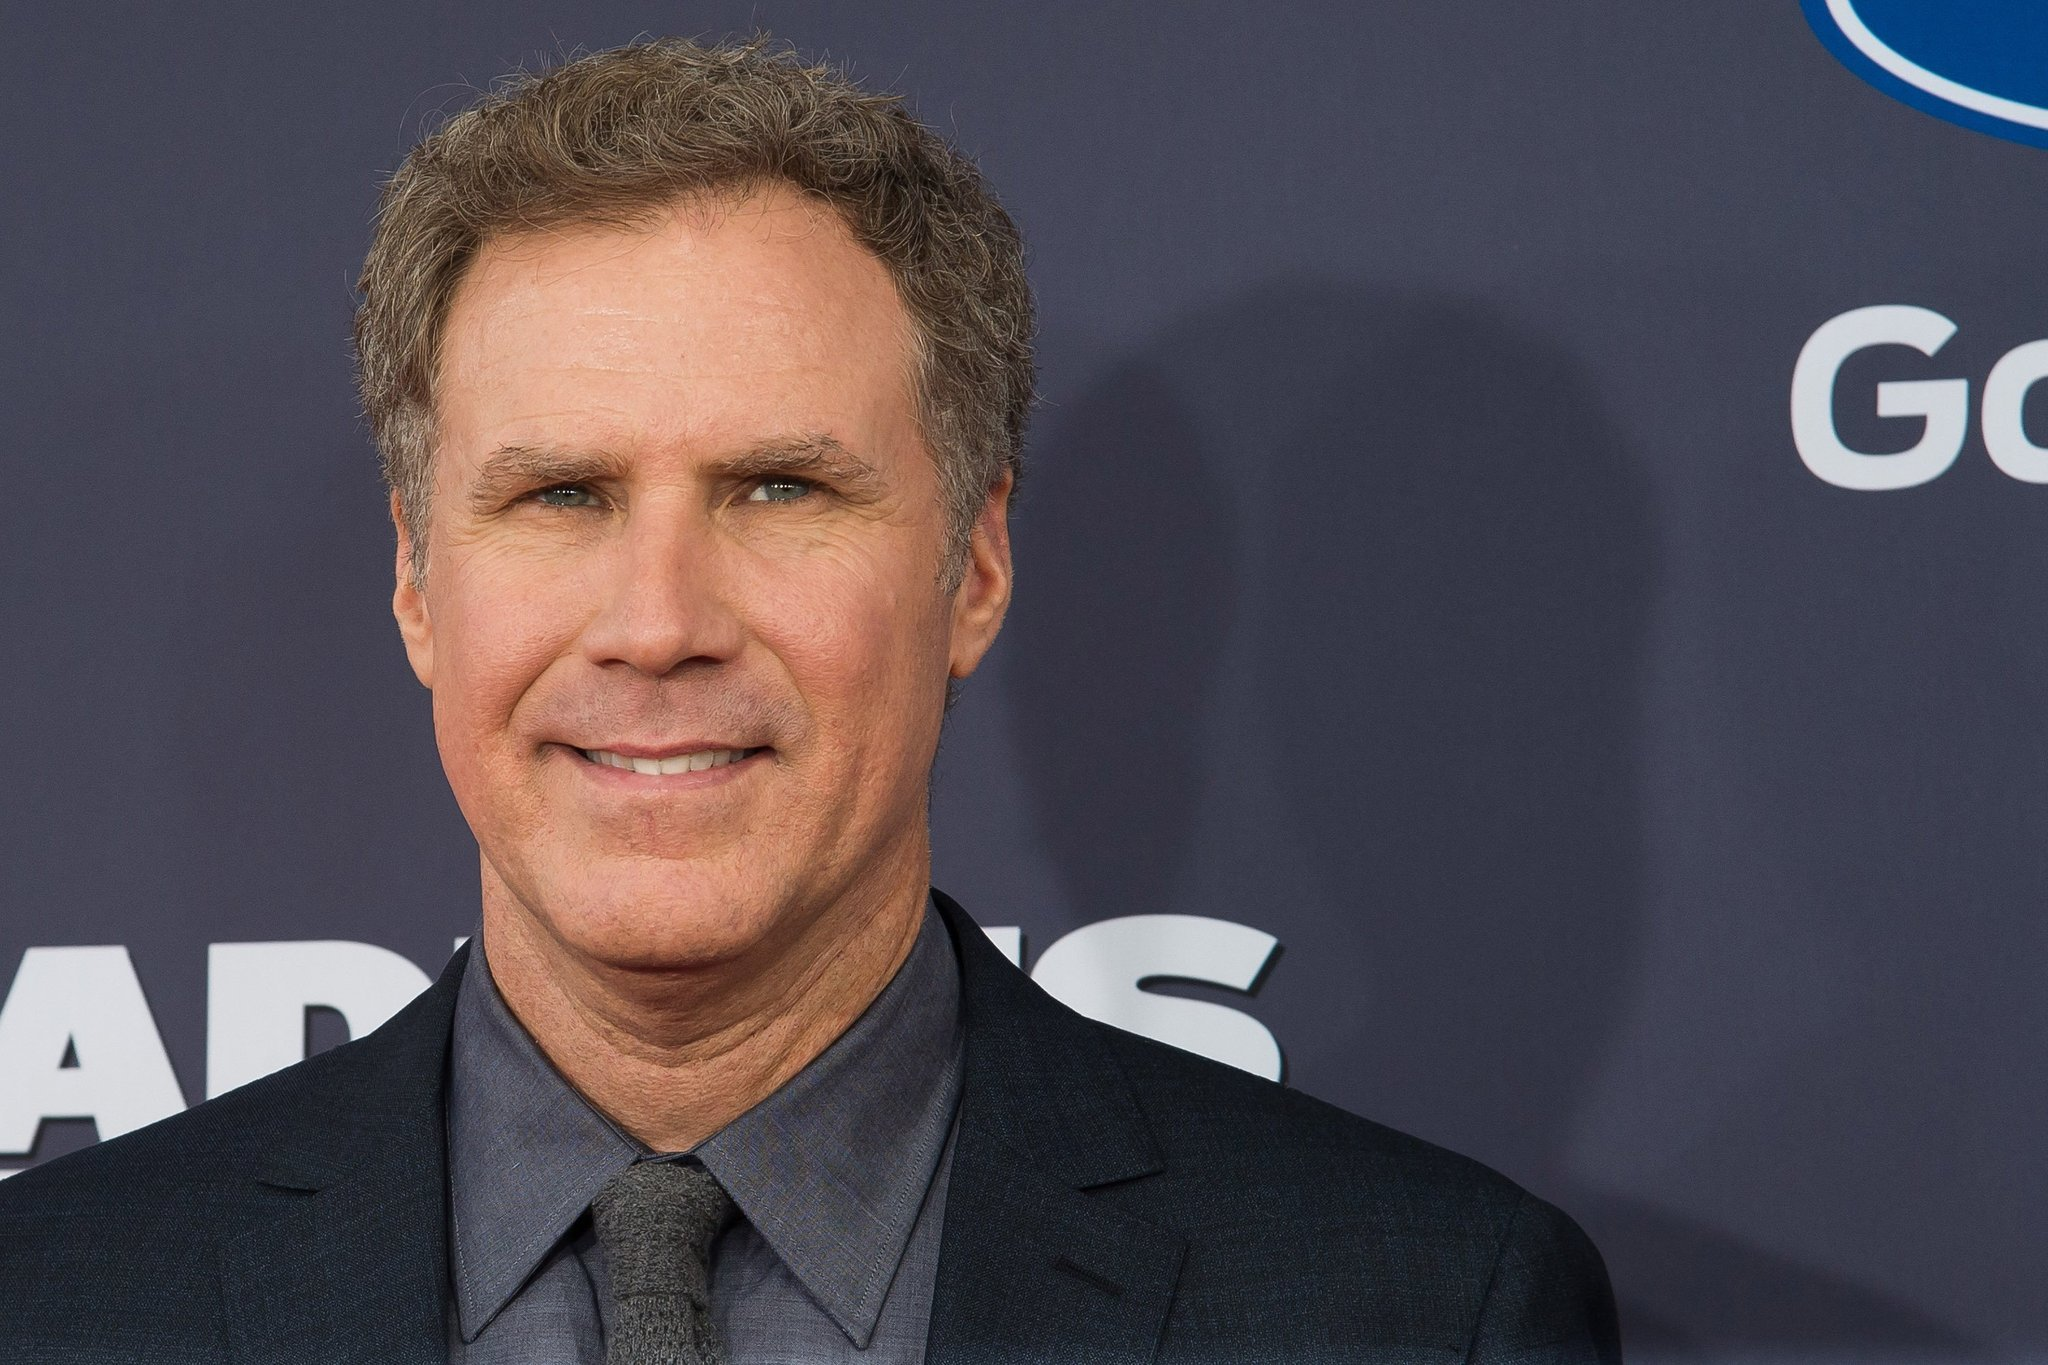 will ferrell фильмографияwill ferrell movies, will ferrell фильмография, will ferrell wife, will ferrell height, will ferrell twitter, will ferrell imdb, will ferrell elf, will ferrell young, will ferrell sherlock, will ferrell snl, will ferrell happy, will ferrell gif, will ferrell saturday night live, will ferrell filmleri, will ferrell holmes, will ferrell cowbell, will ferrell basketball, will ferrell filmy, will ferrell films, will ferrell drums